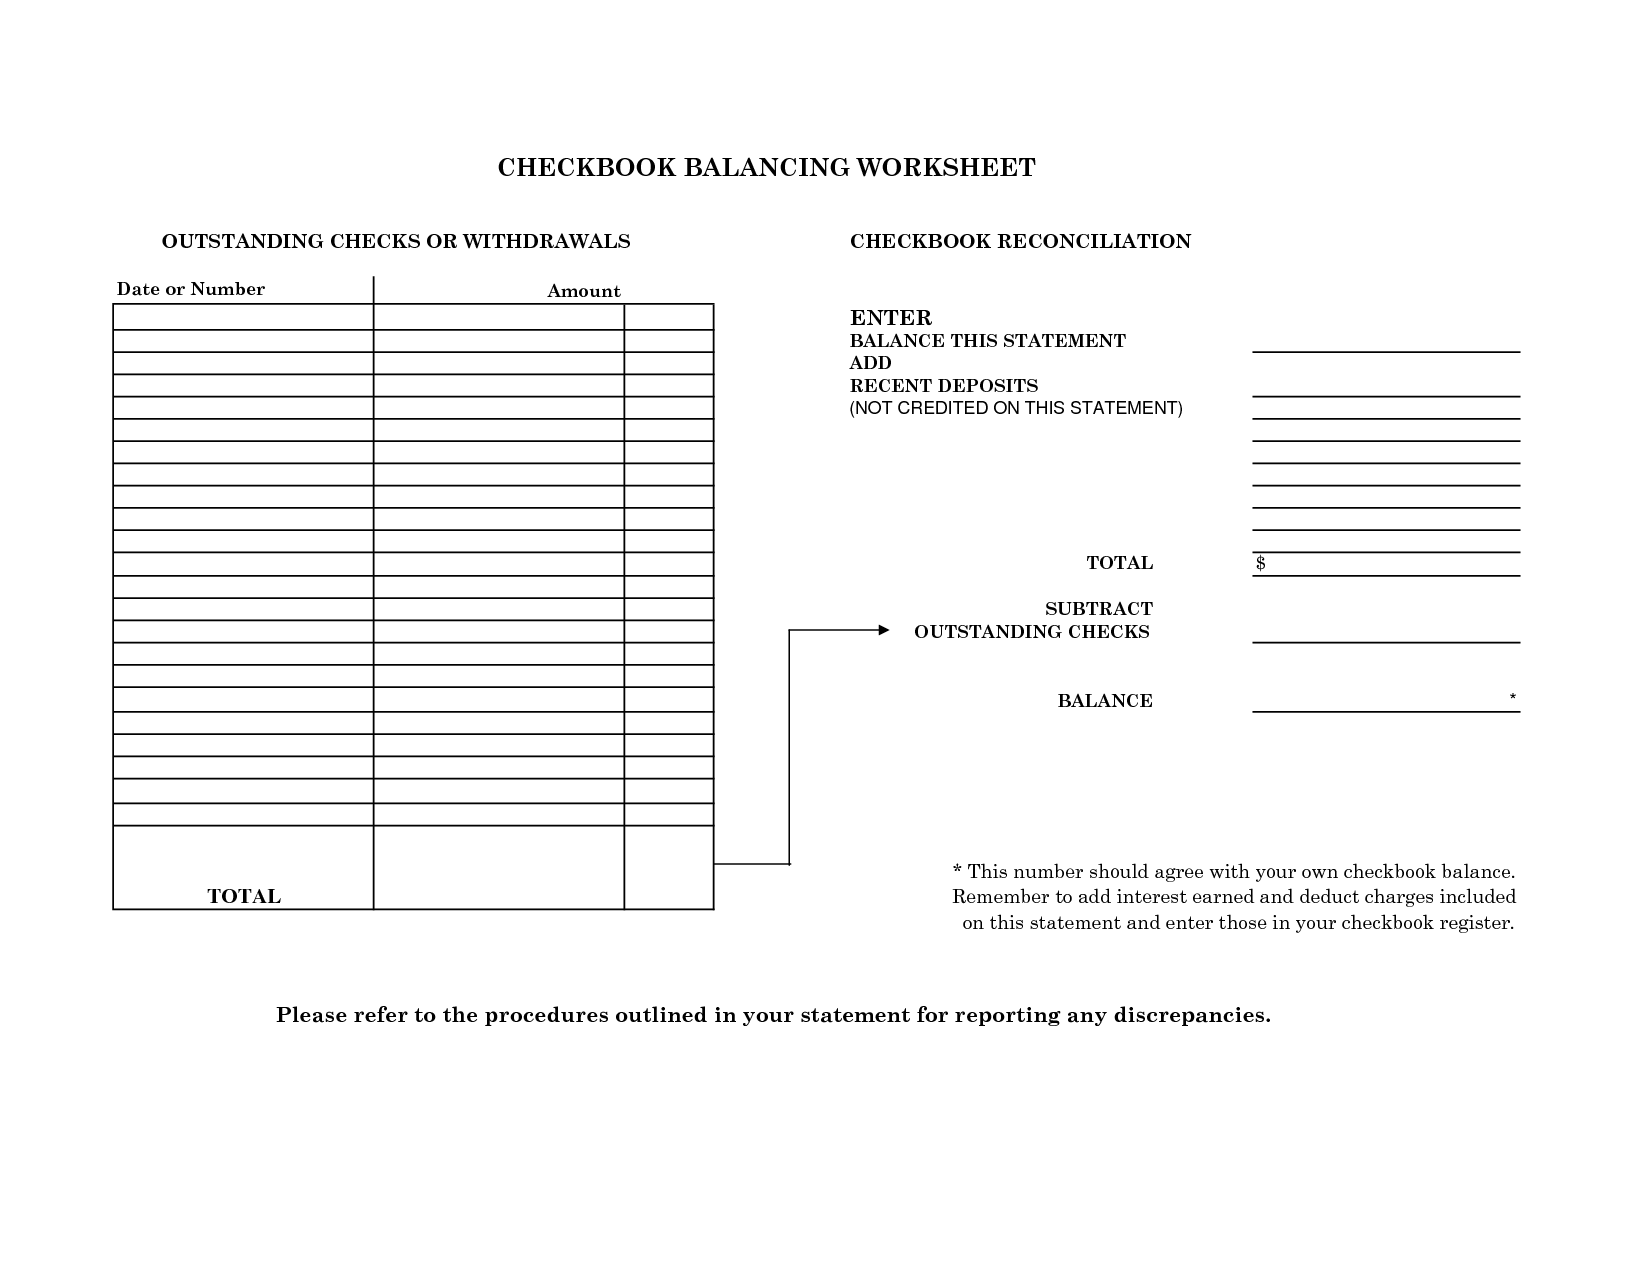 Checkbook Reconciliation Practice Worksheets Best Photos